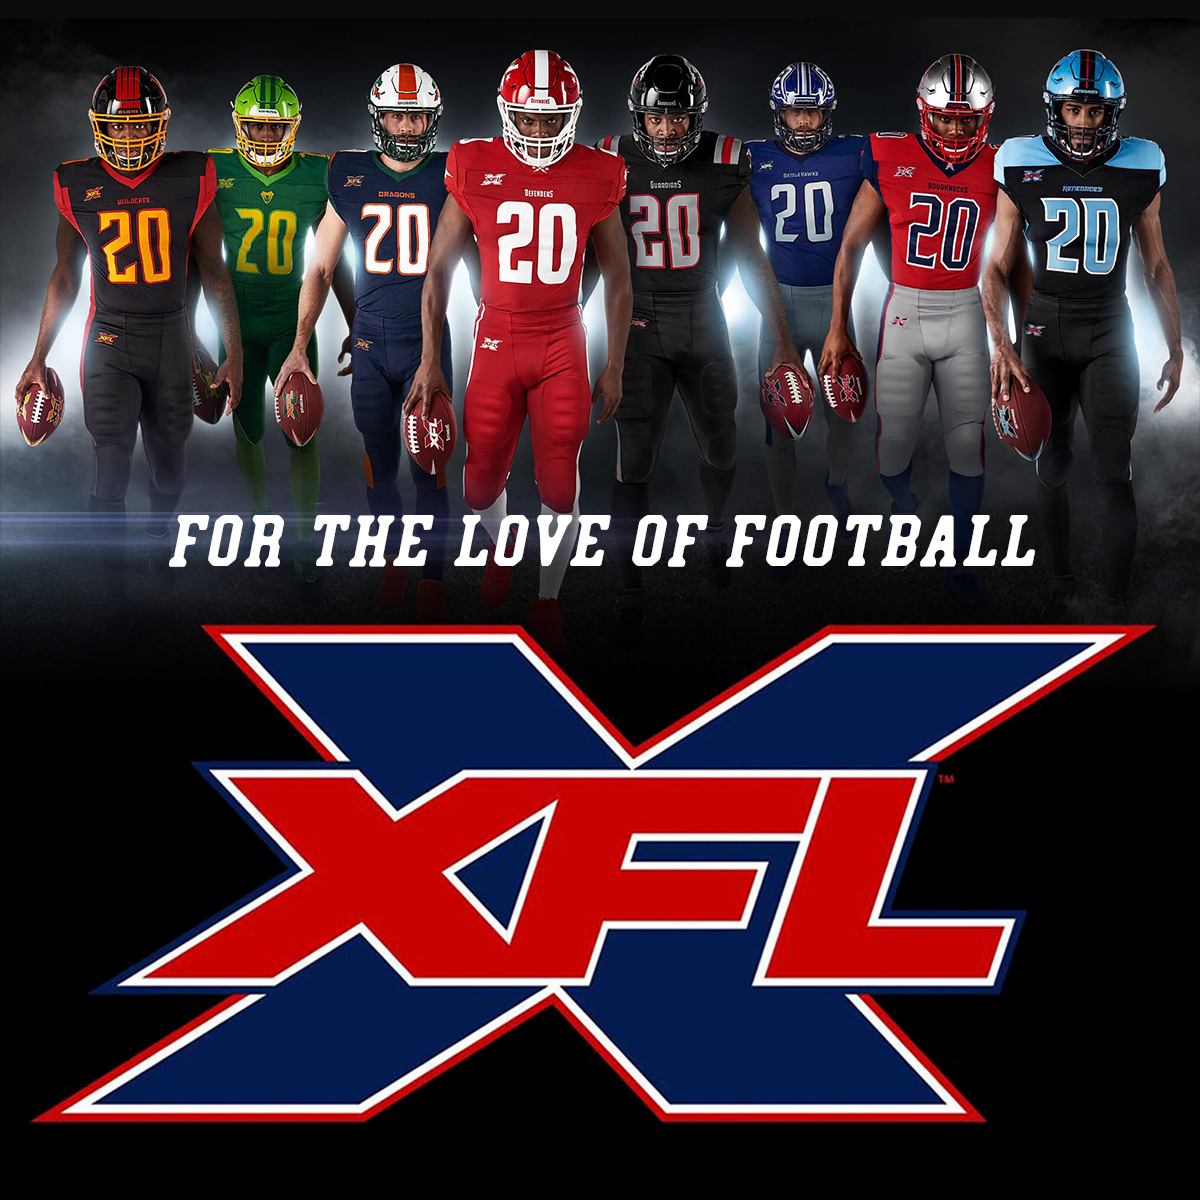 We are your XFL Football Headquarters